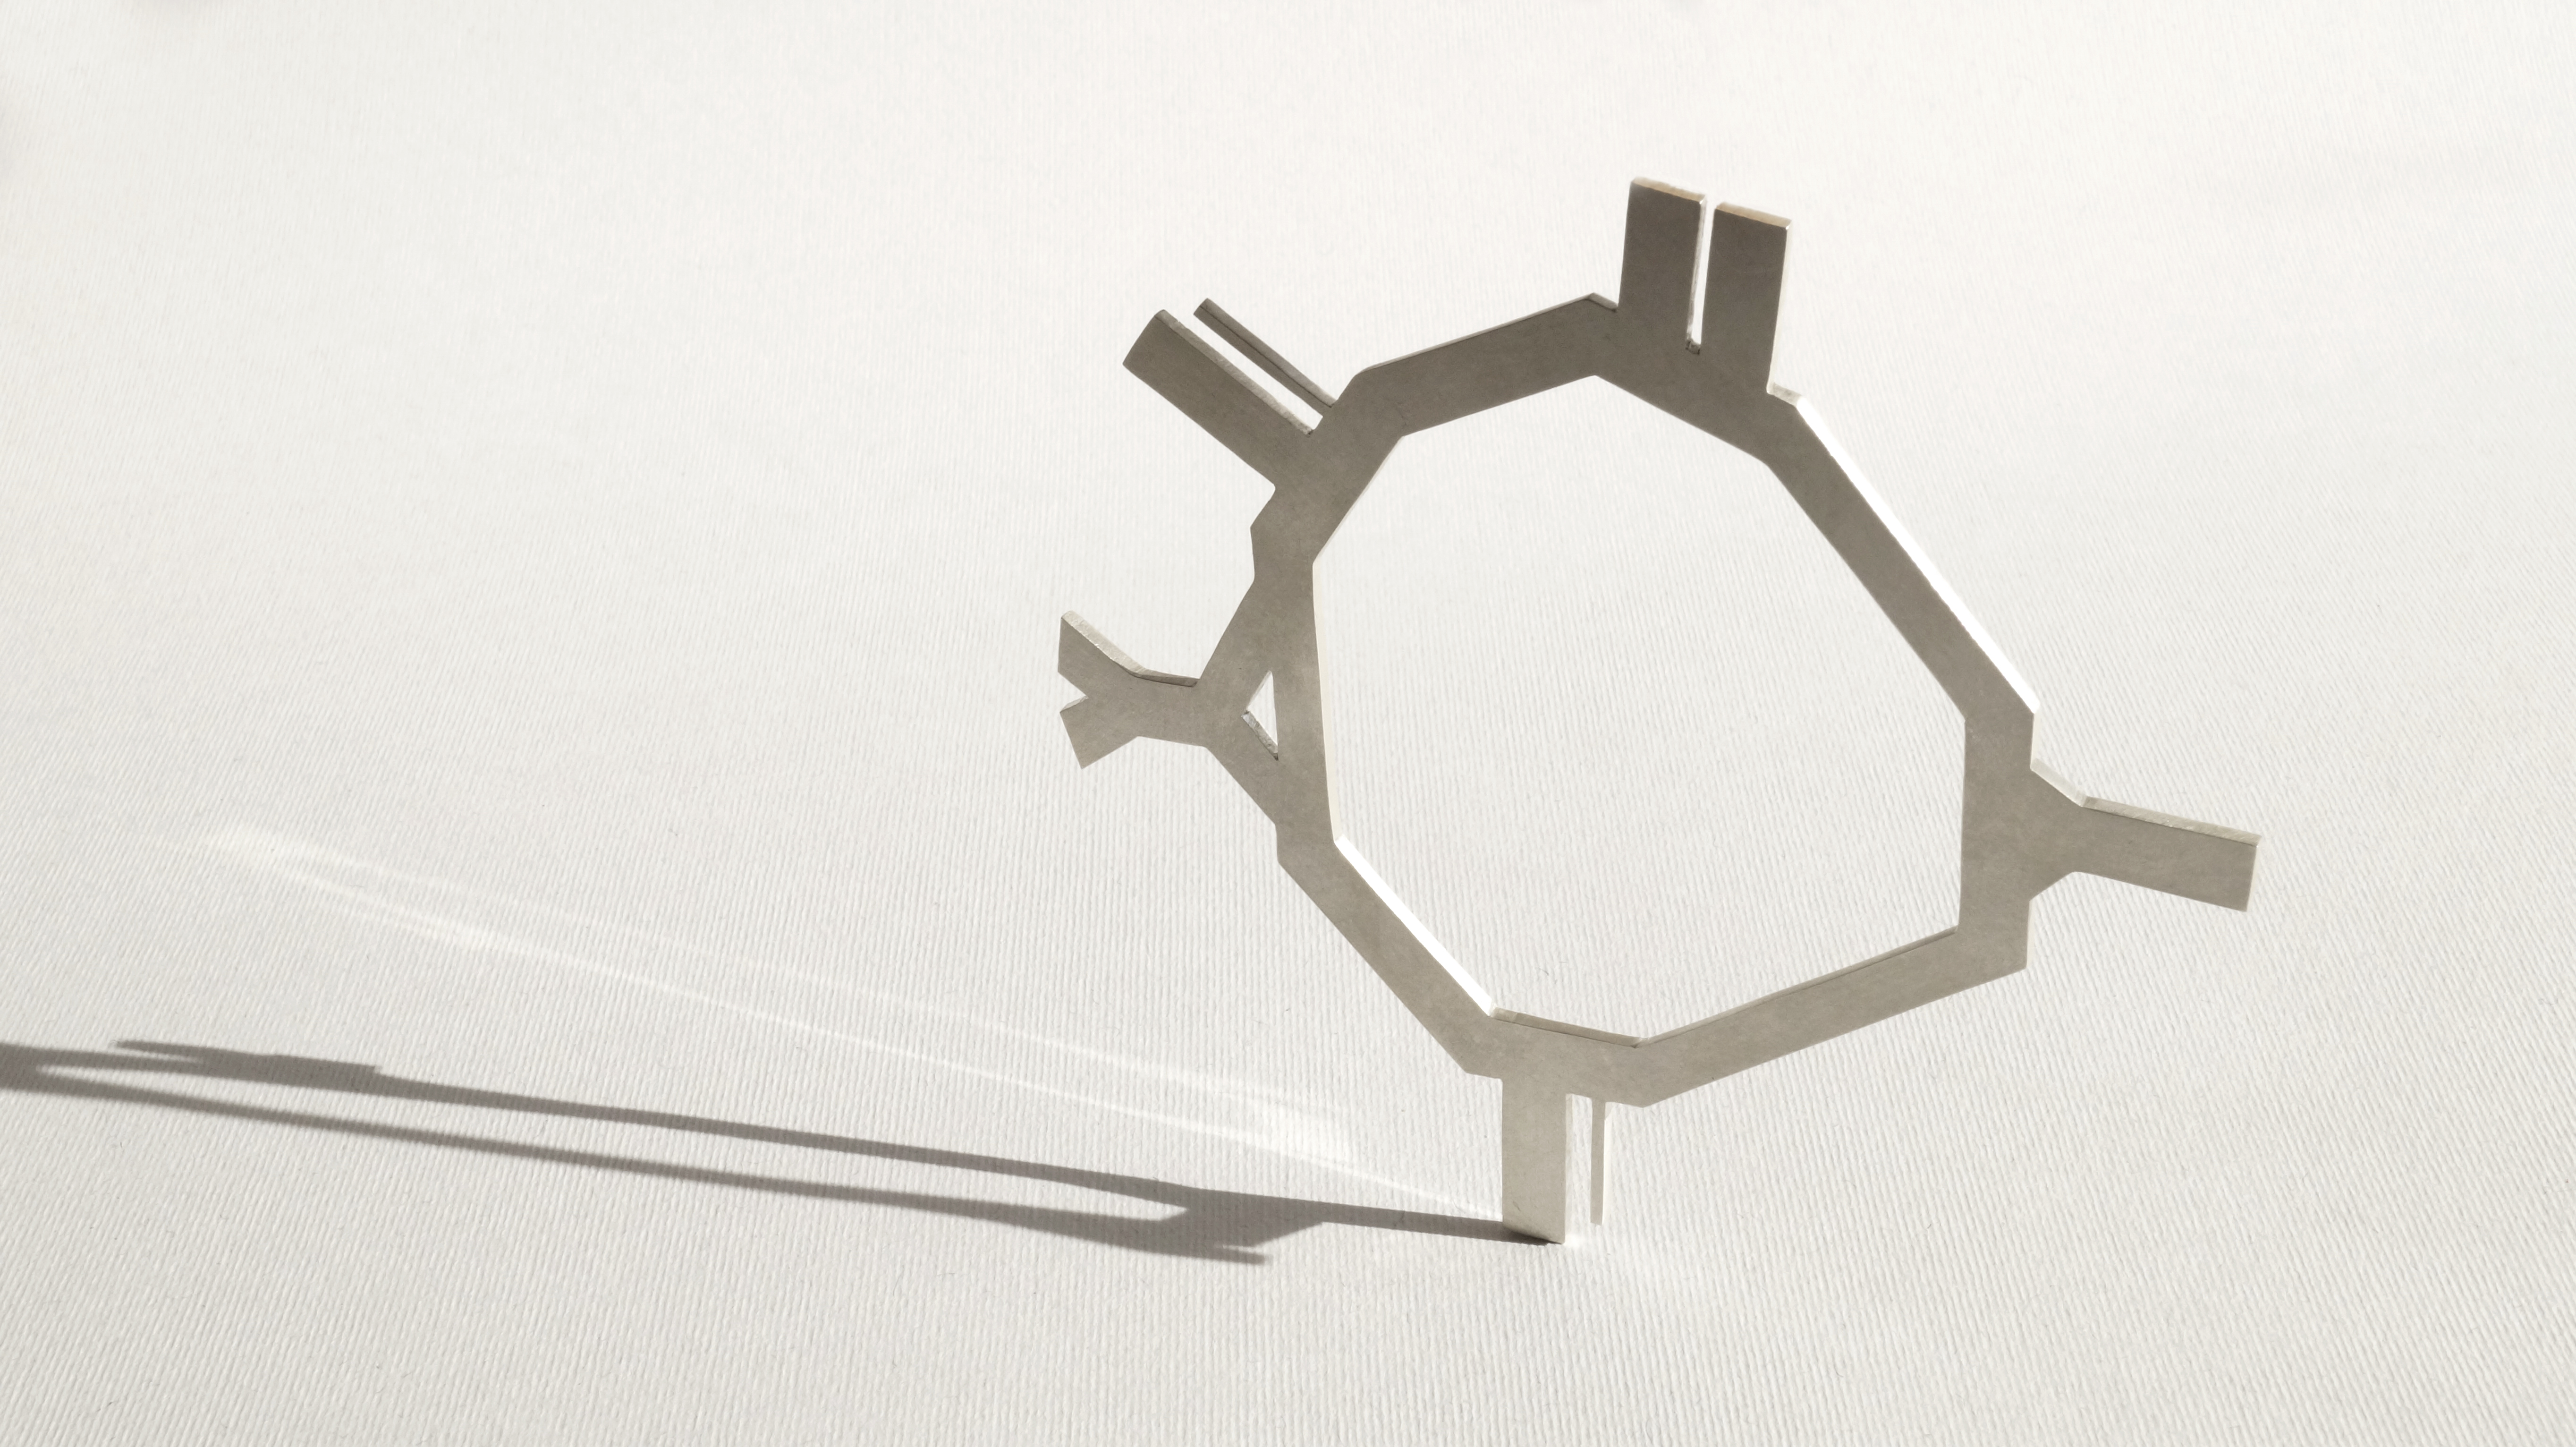 Artist pays homage to Warsaw districts with striking silver jewellery – The First News 3